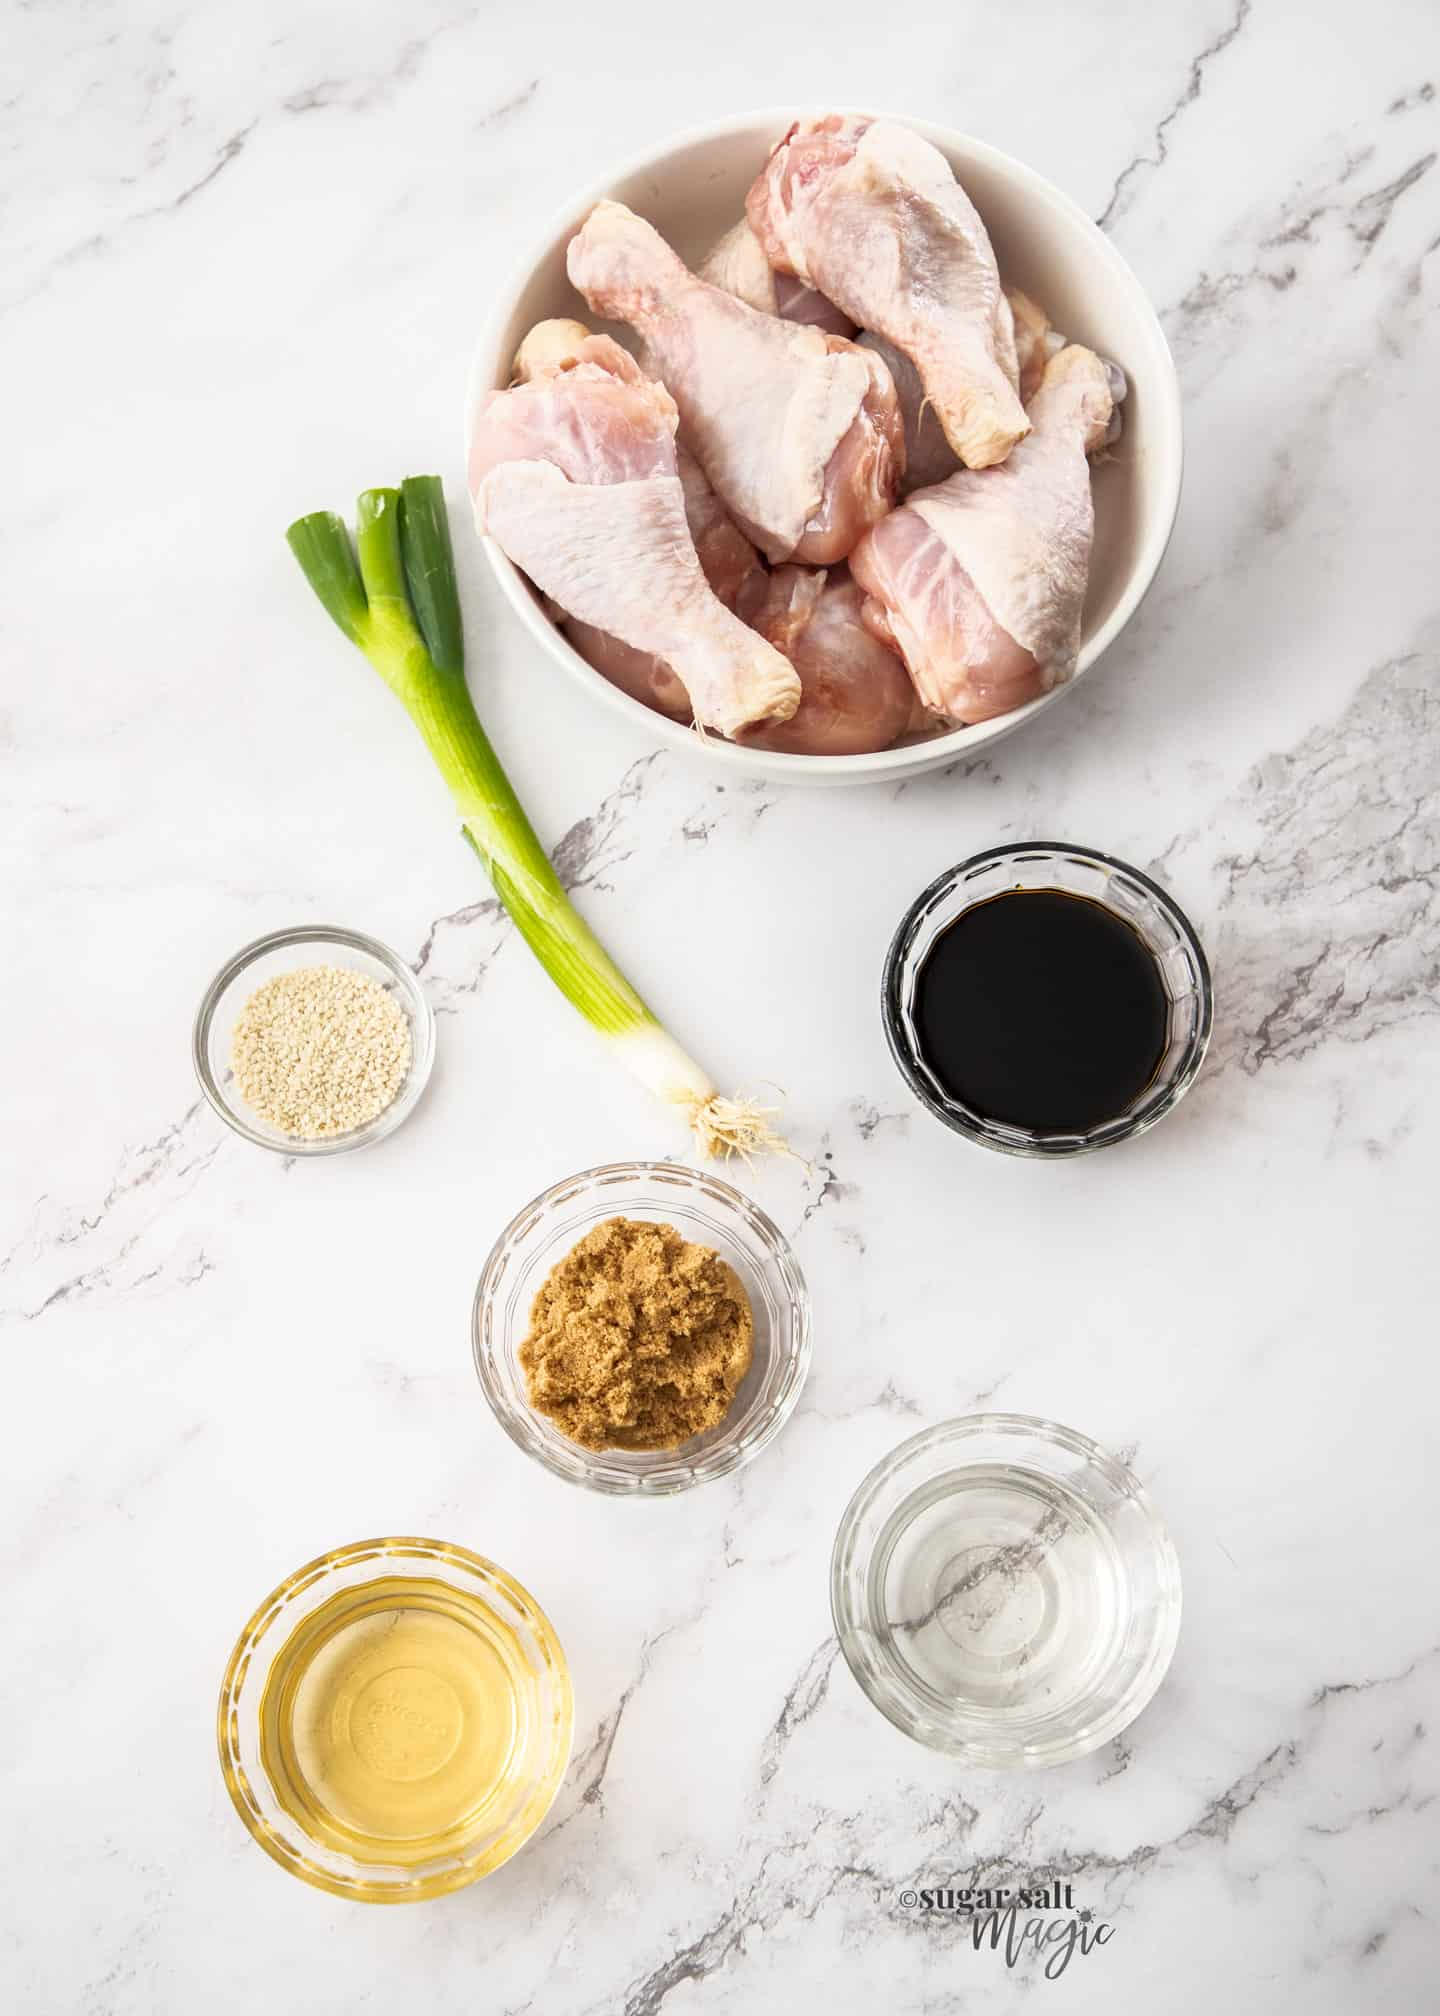 Ingredients for air fryer chicken drumsticks on a marble benchtop.